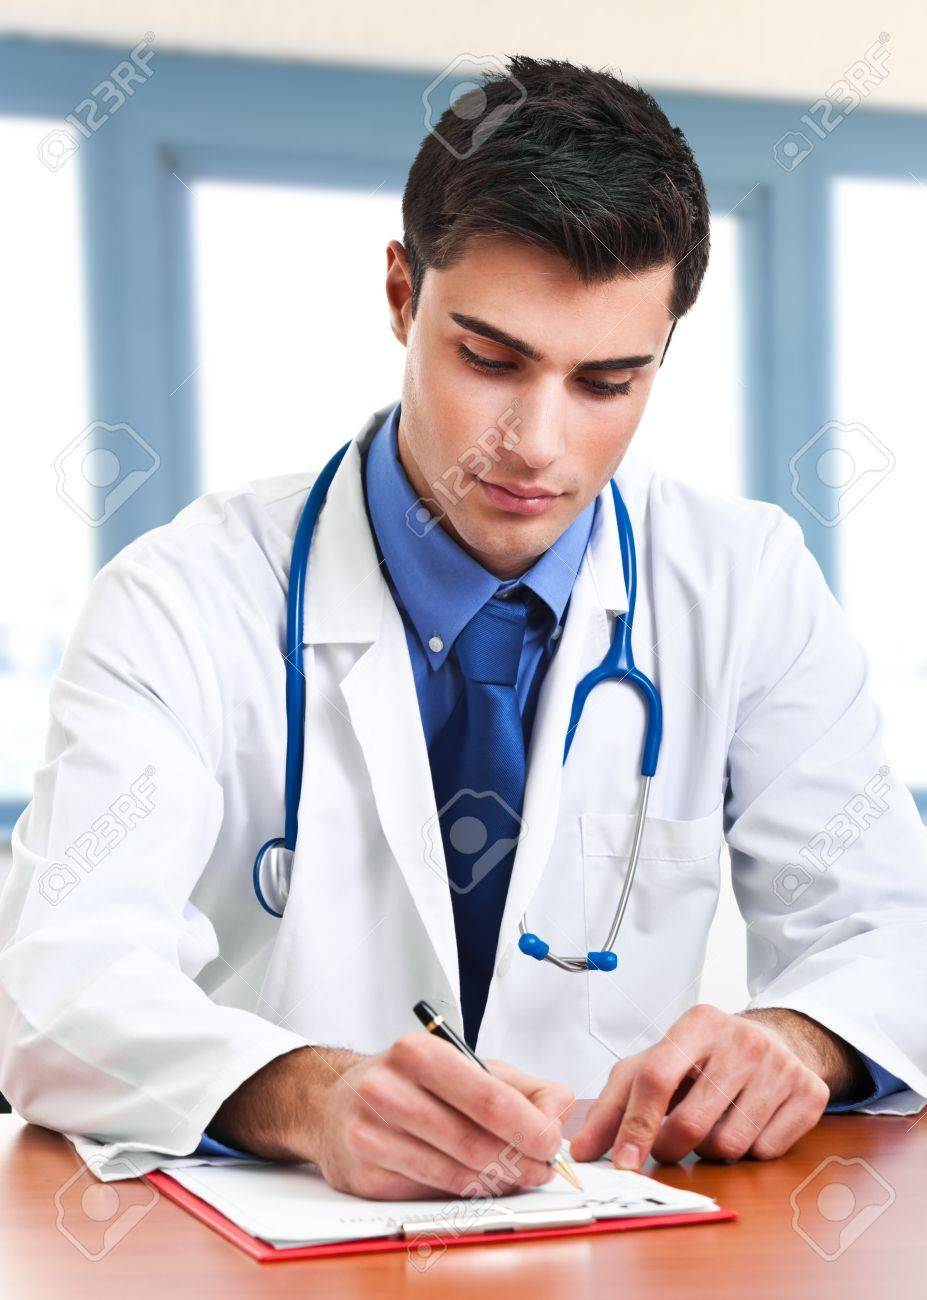 Portrait of an handsome young doctor Stock Photo - 19094341